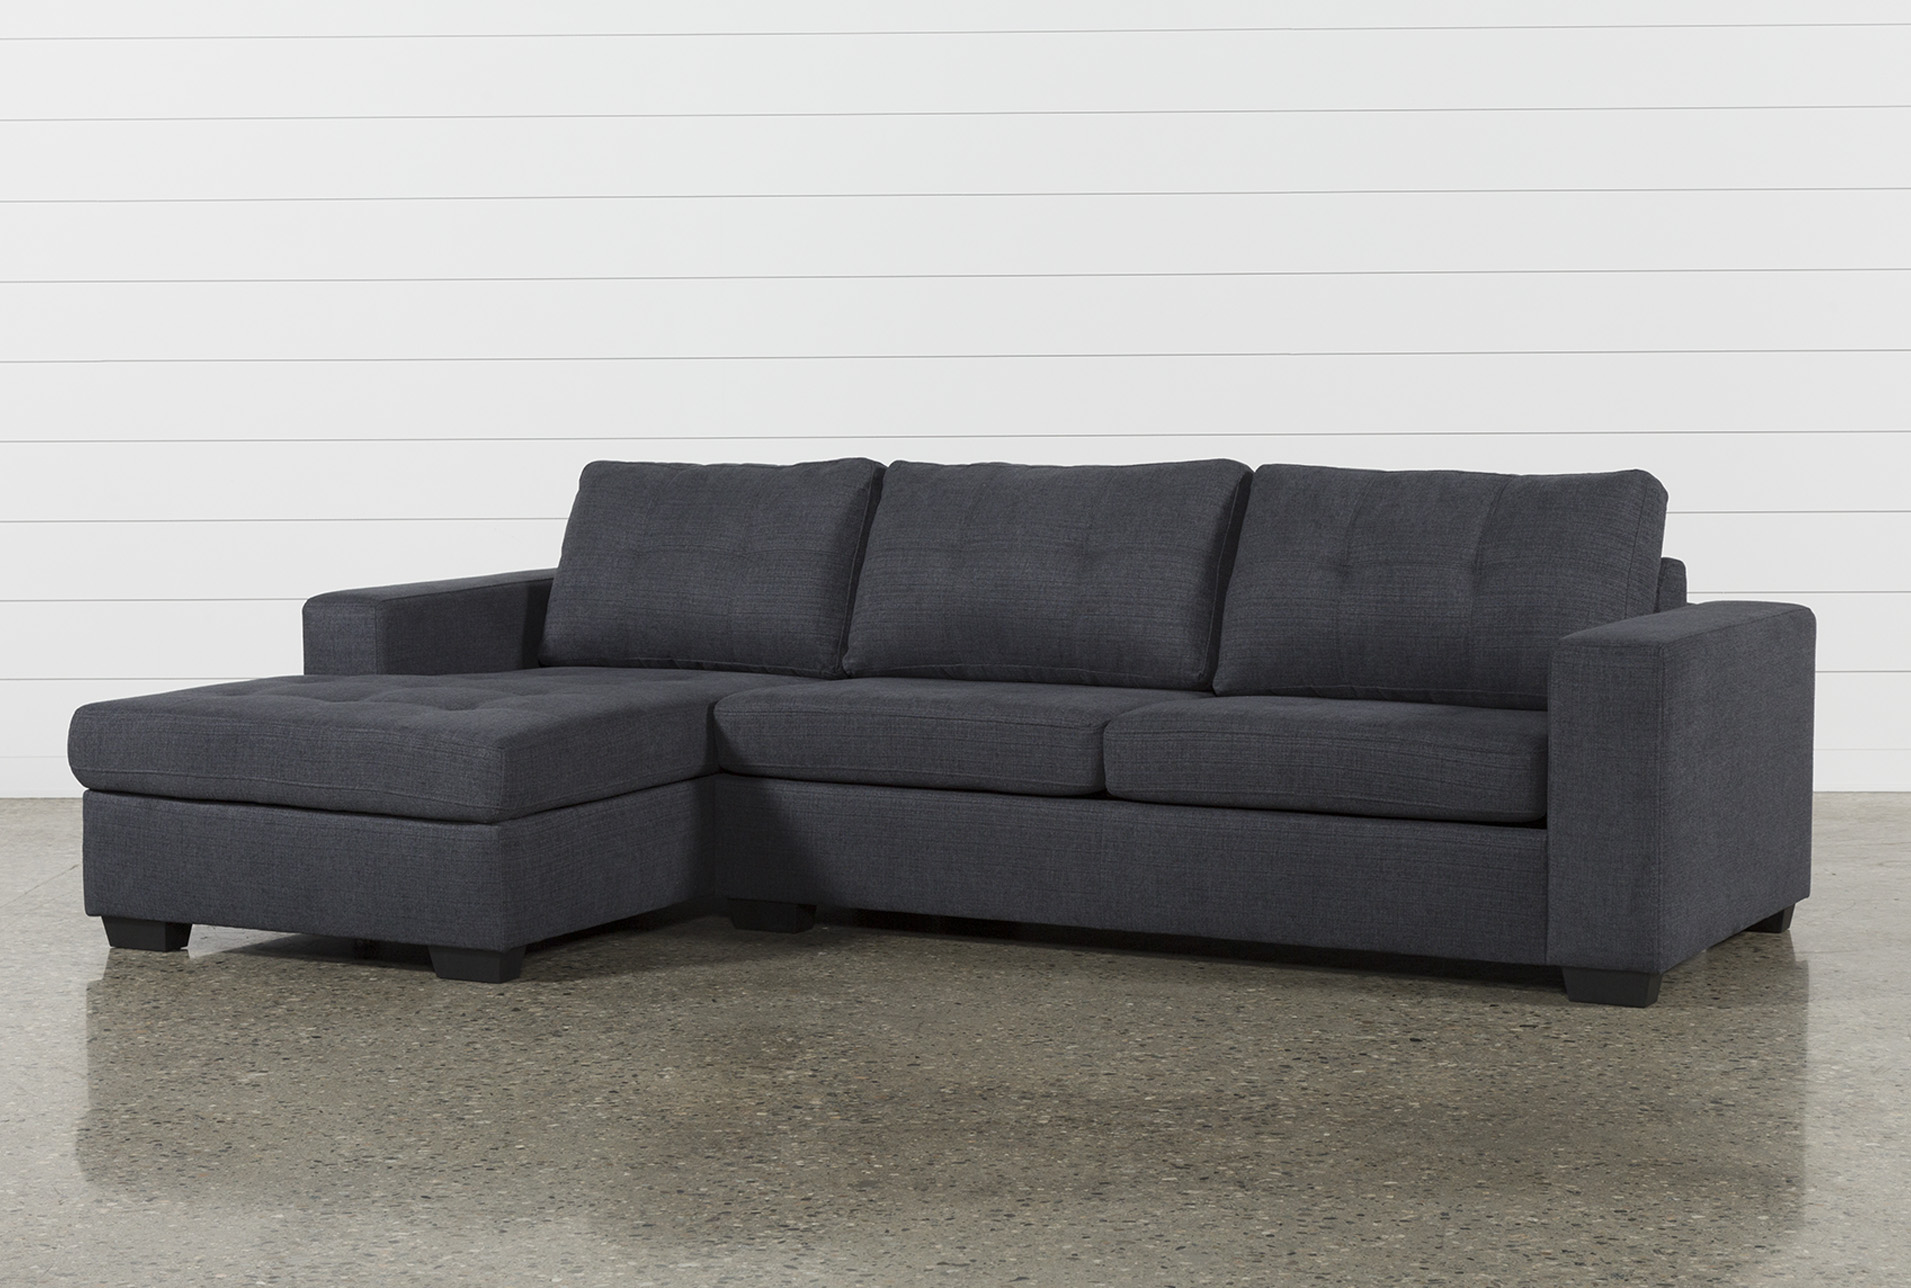 Remington Charcoal 2 Piece Sleeper Sectional W/Laf Storage Chaise (Qty: 1)  has been successfully added to your Cart.